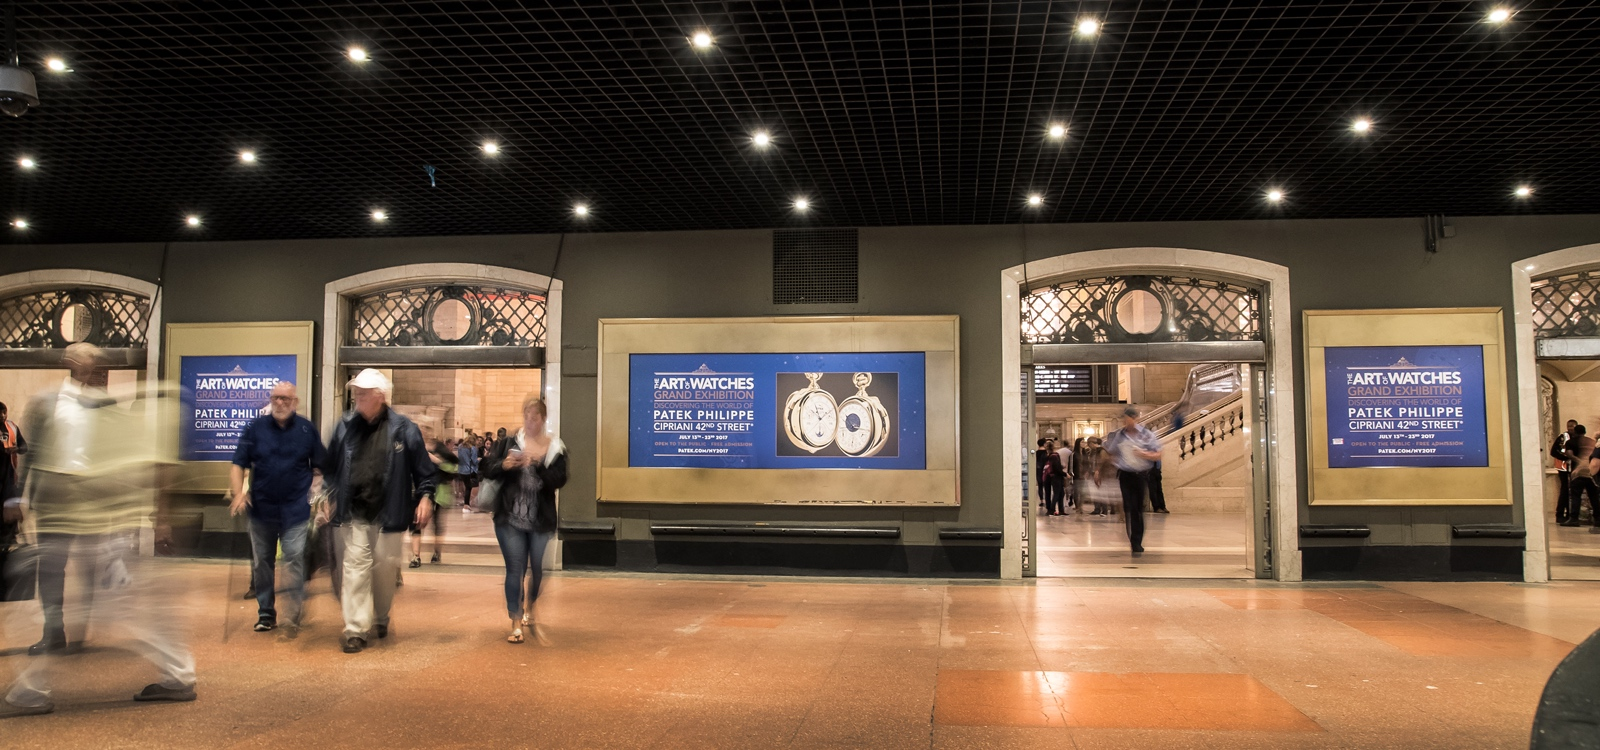 Patek Philippe The Art of Watches Grand Exhibition New York 2017 - Grand Central